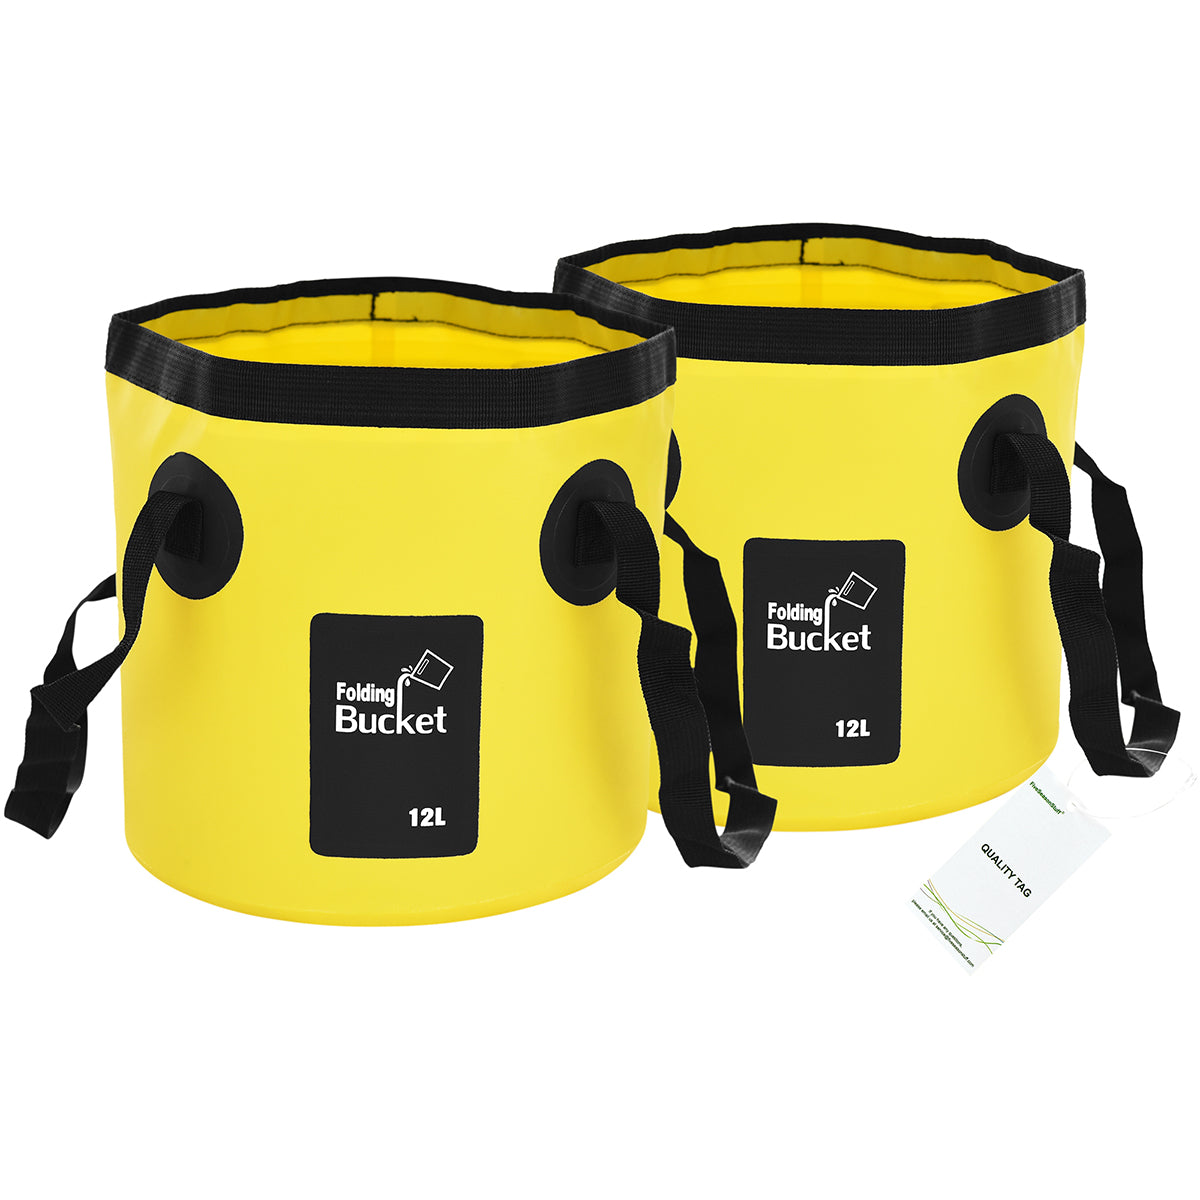 Two standing yellow collapsible buckets with handles display with a white background